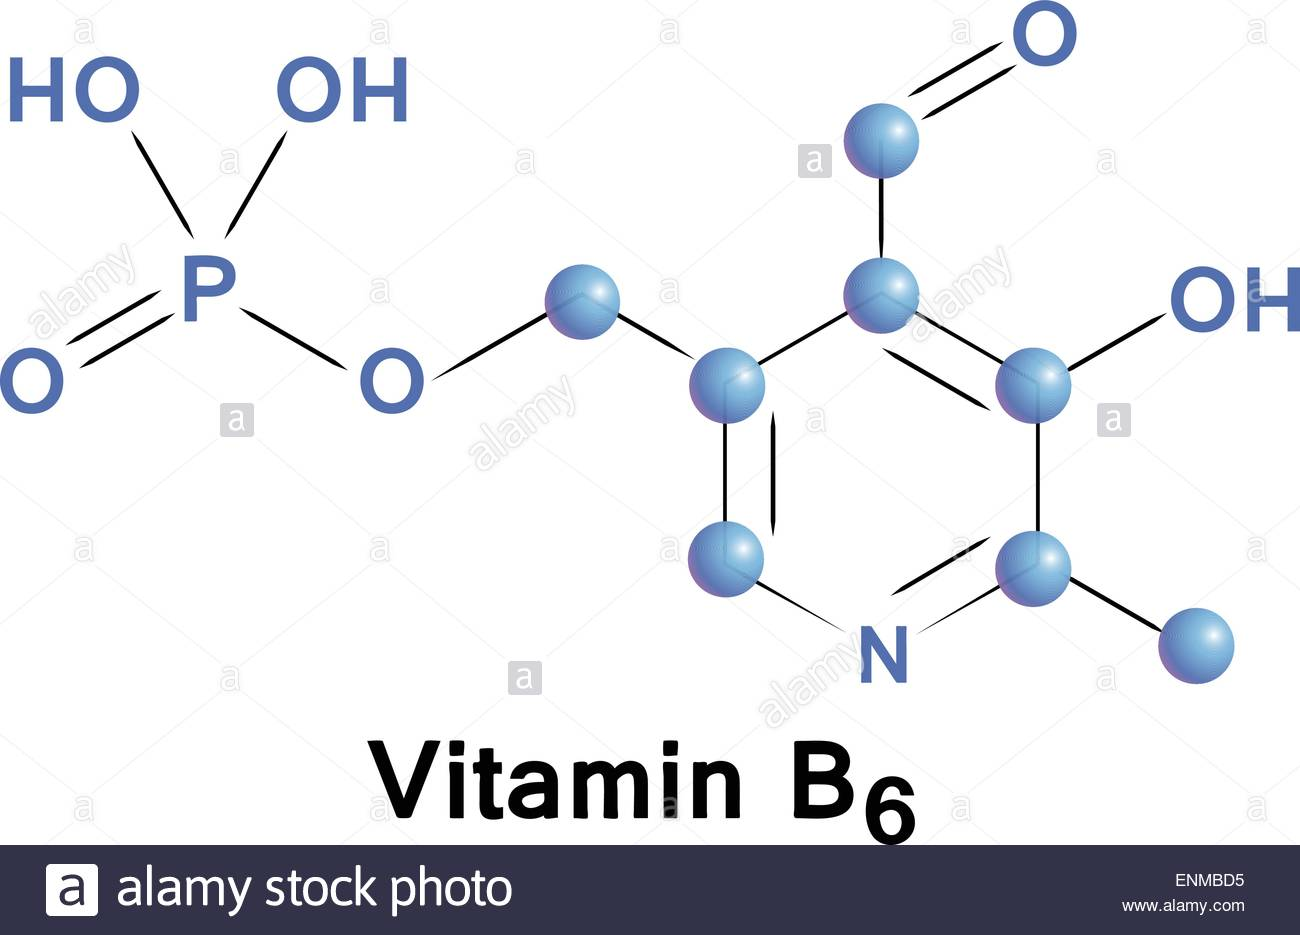 Vitamin B6 Chemical Formula, Molecule Structure, Medical Vector